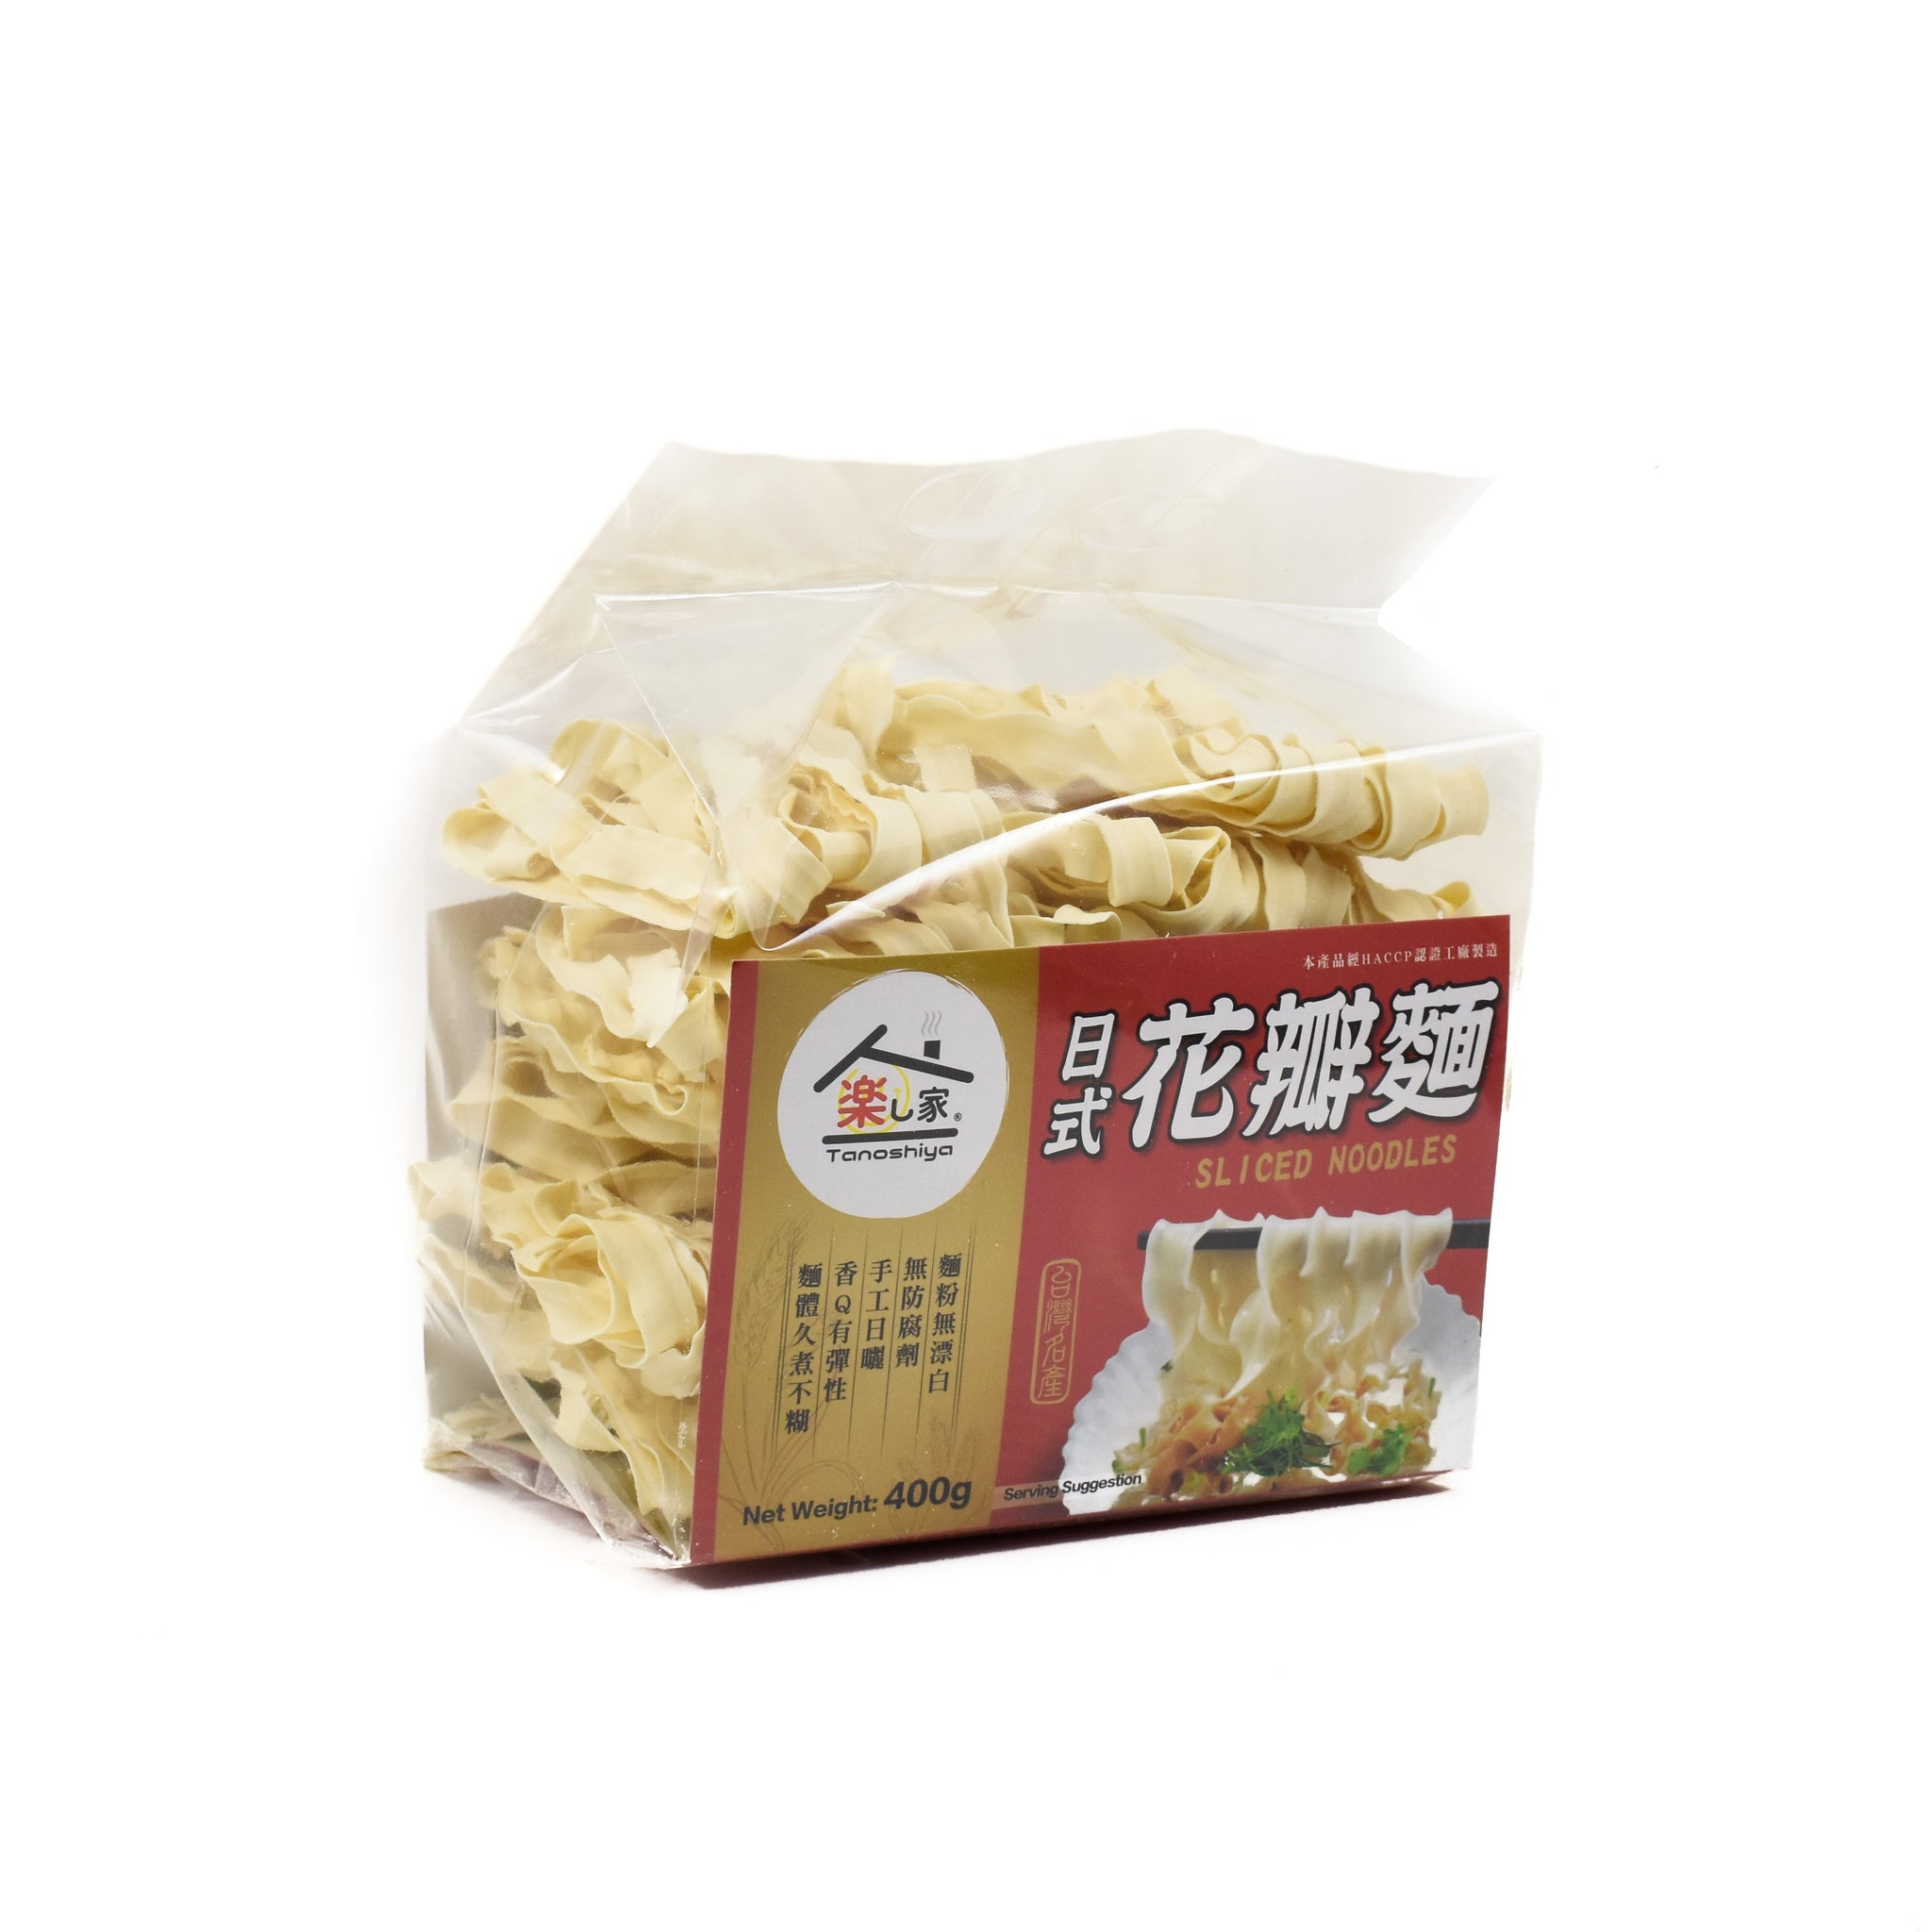 TW Taiwanese Dried Noodles 400g Ingredients Pasta Rice & Noodles Noodles